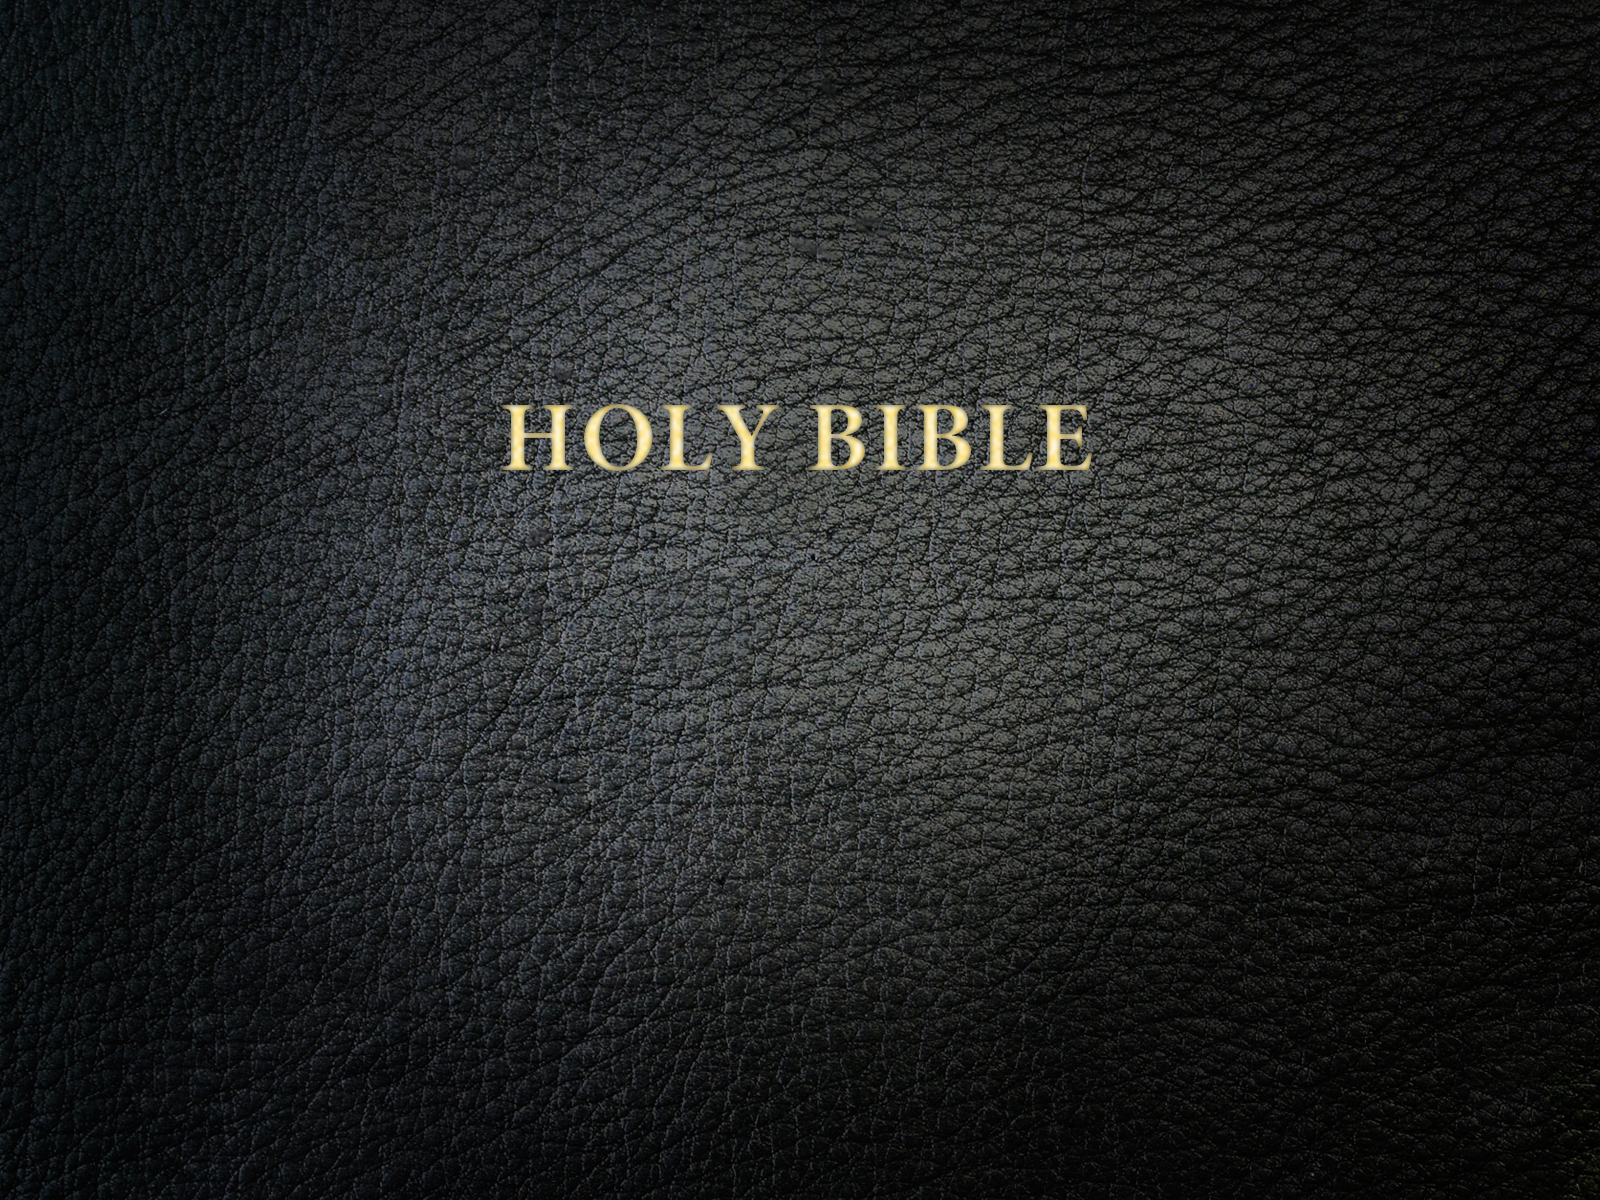 Holy bible ending image